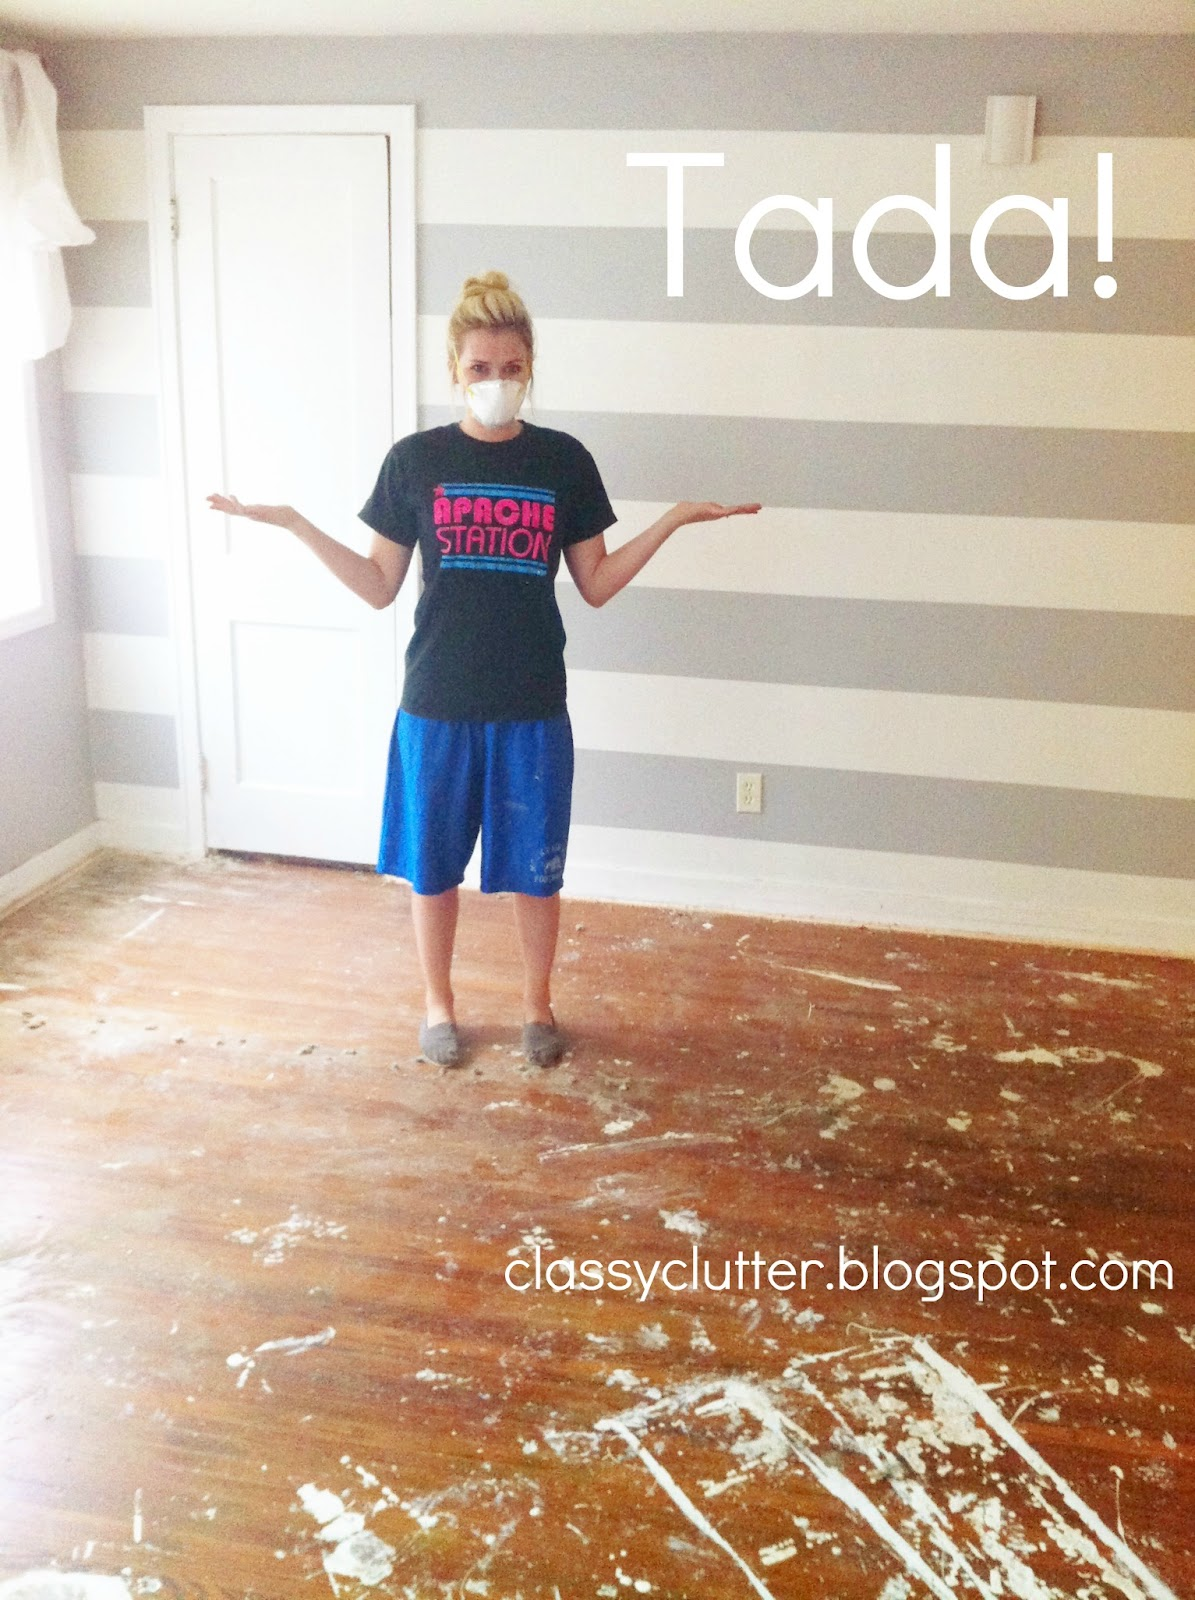 Do you see all that paint on the floor? It looked like the people who renovated the house knew they were going to lay carpet down after they painted the ...